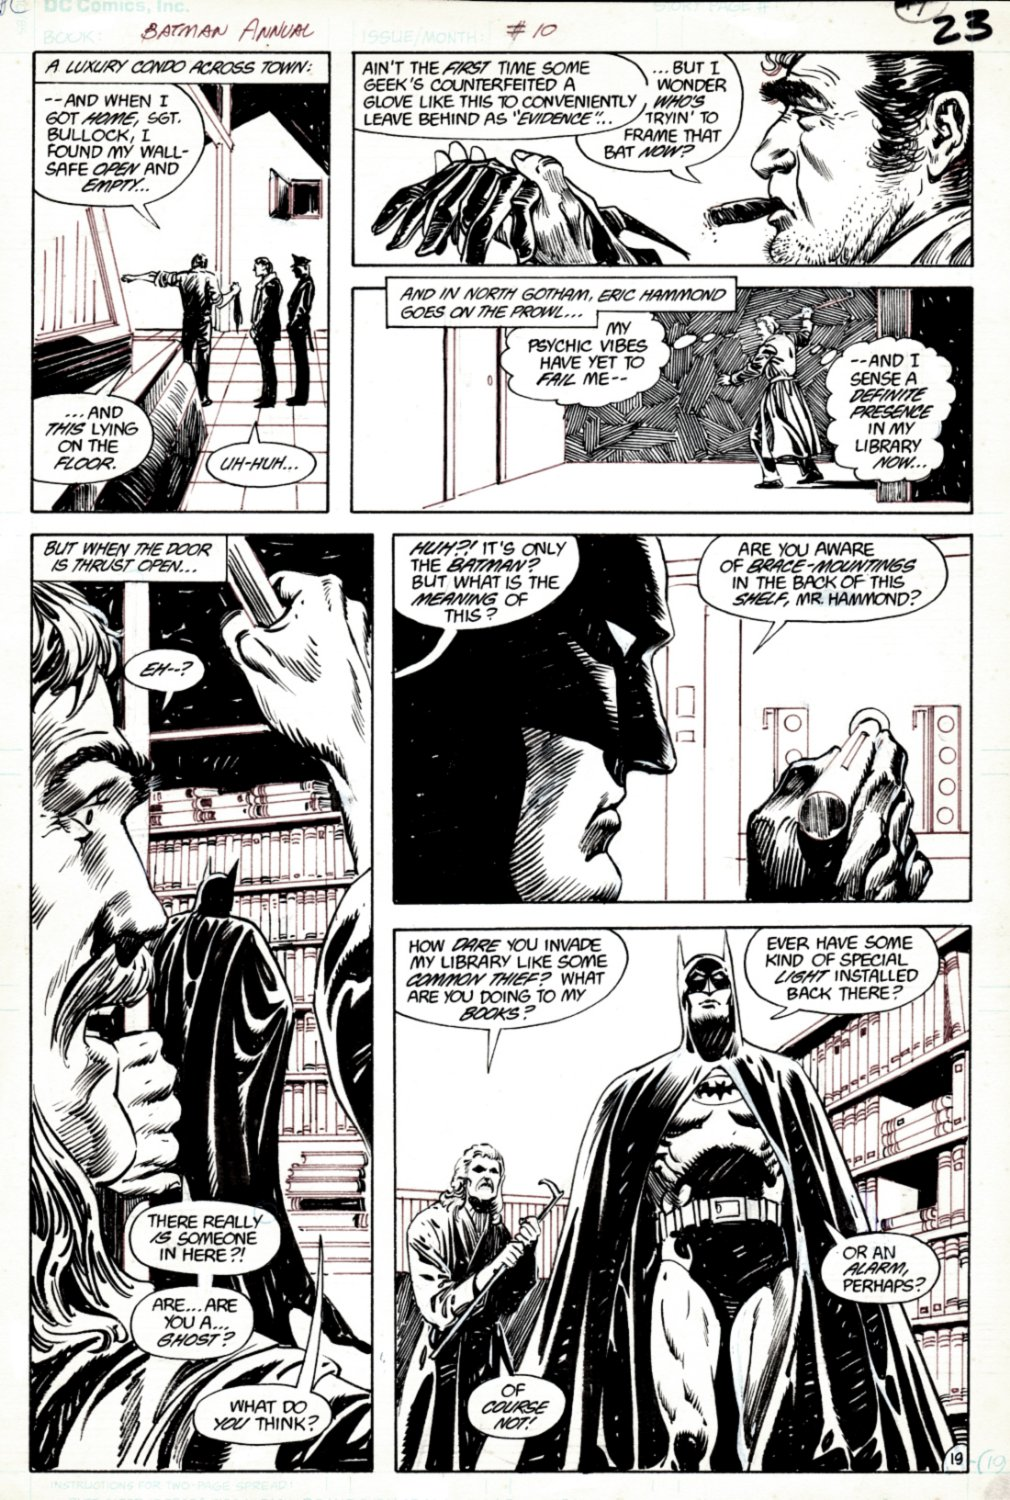 Batman Annual #10 p 19 (SOLD LIVE ON 'DUELING DEALERS OF COMIC ART' EPISODE #34 PODCAST ON 9-1-2021(RE-WATCH THIS FUNNY ART SELLING SHOW HERE)